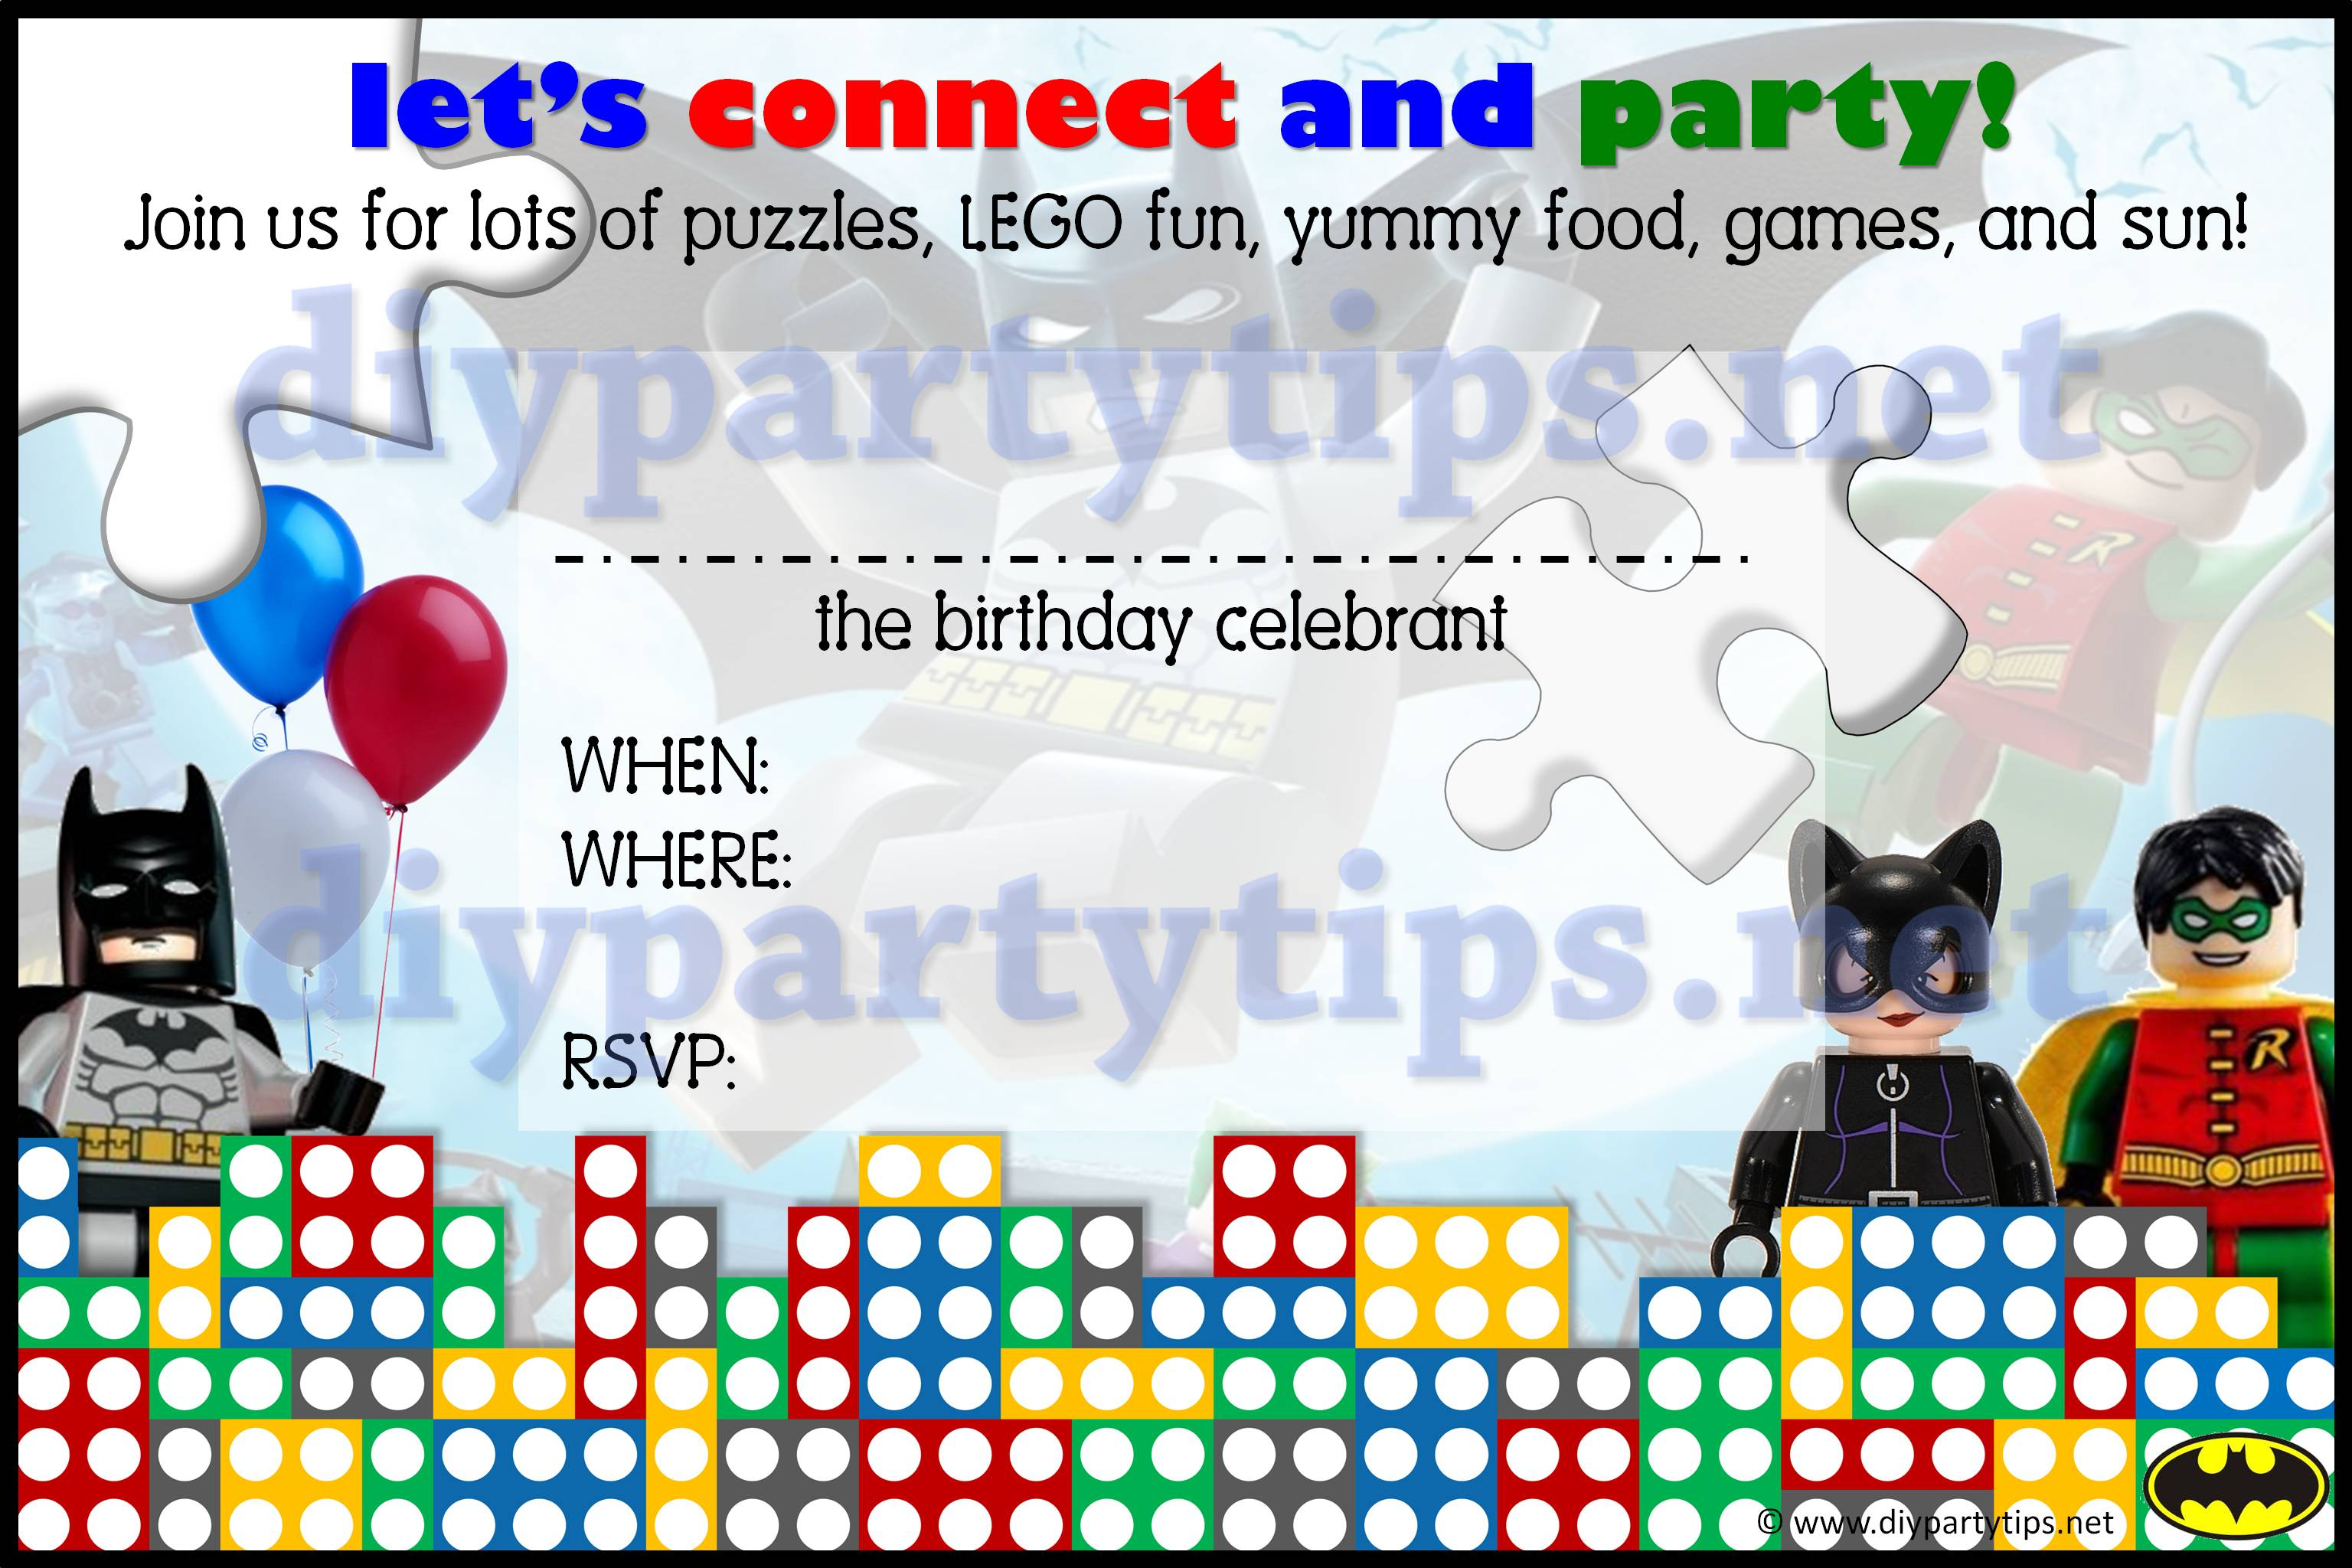 FREE PRINTABLE Lego Party Invitation Lolas DIY Party Tips